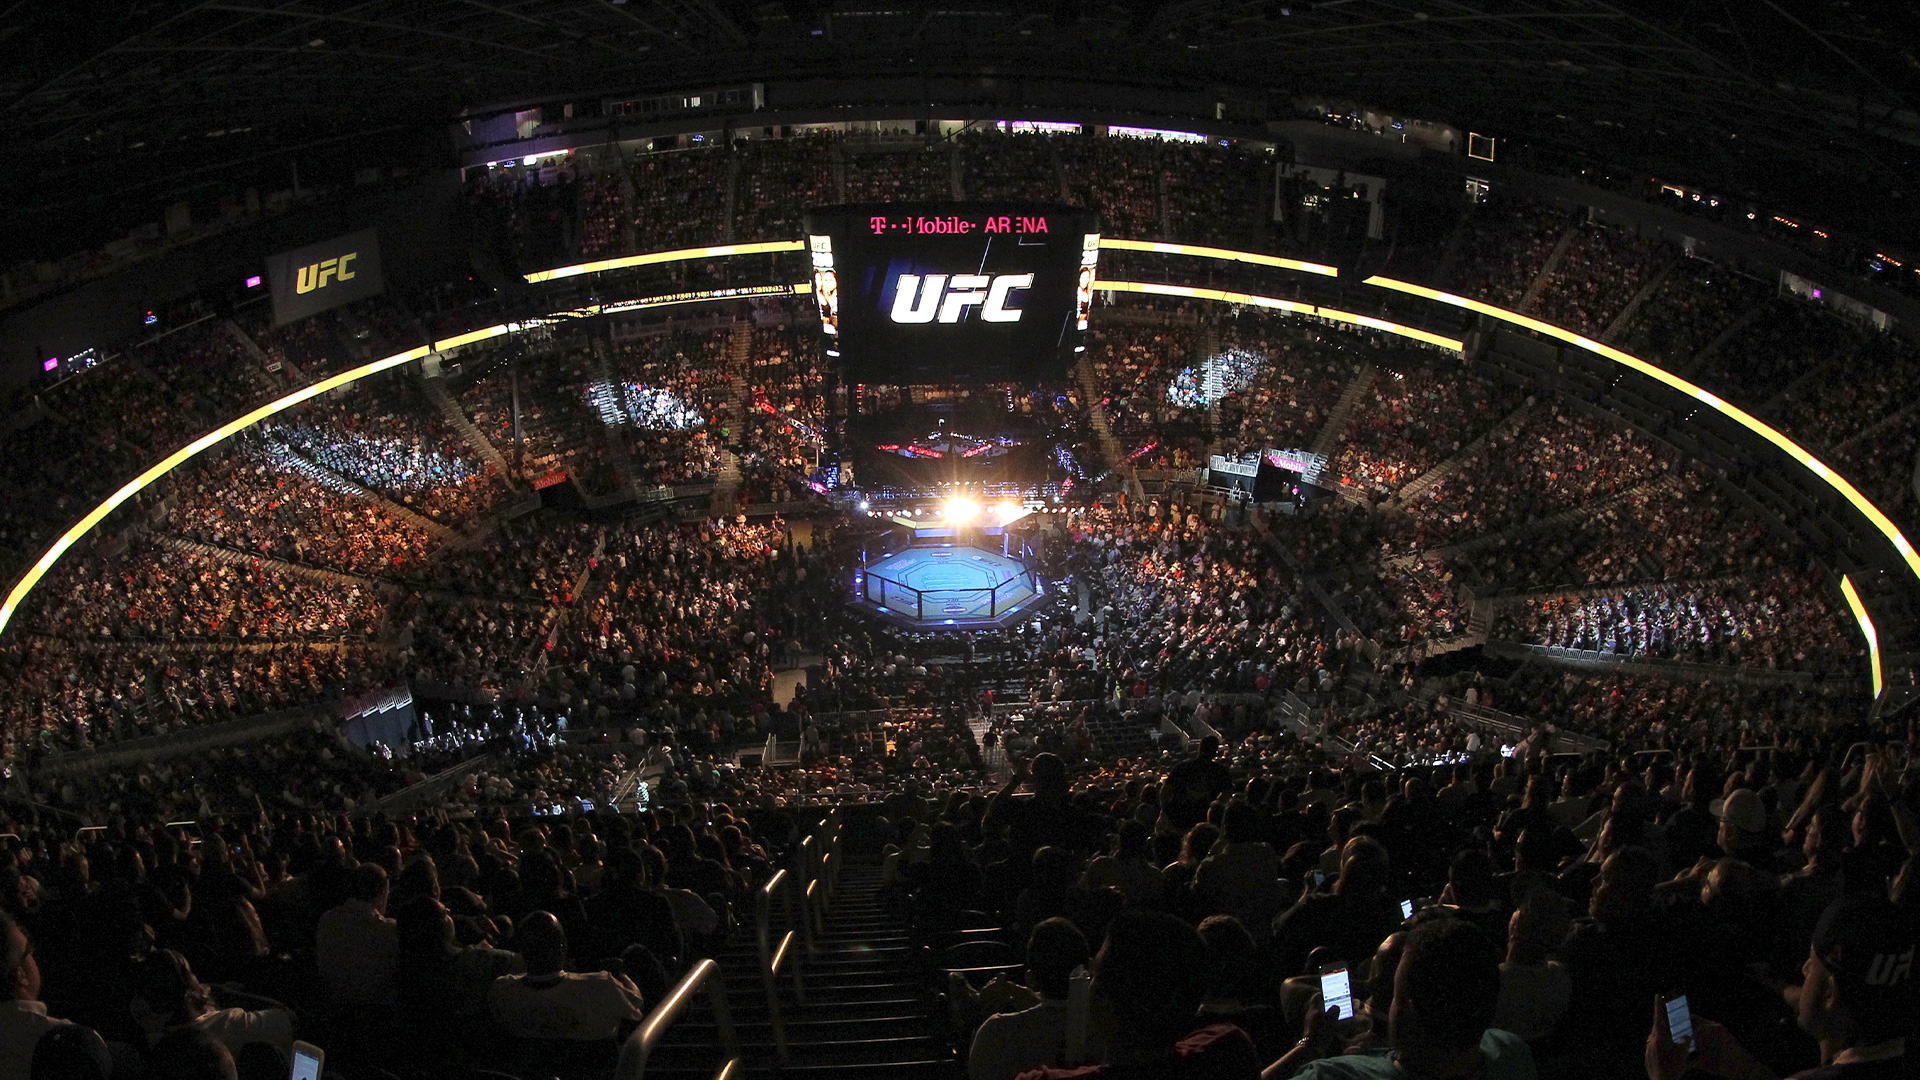 A general view of the arena during the UFC 200 event on July 9, 2016 at T-Mobile Arena in Las Vegas, Nevada. (Photo by Ed Mulholland/Zuffa LLC)